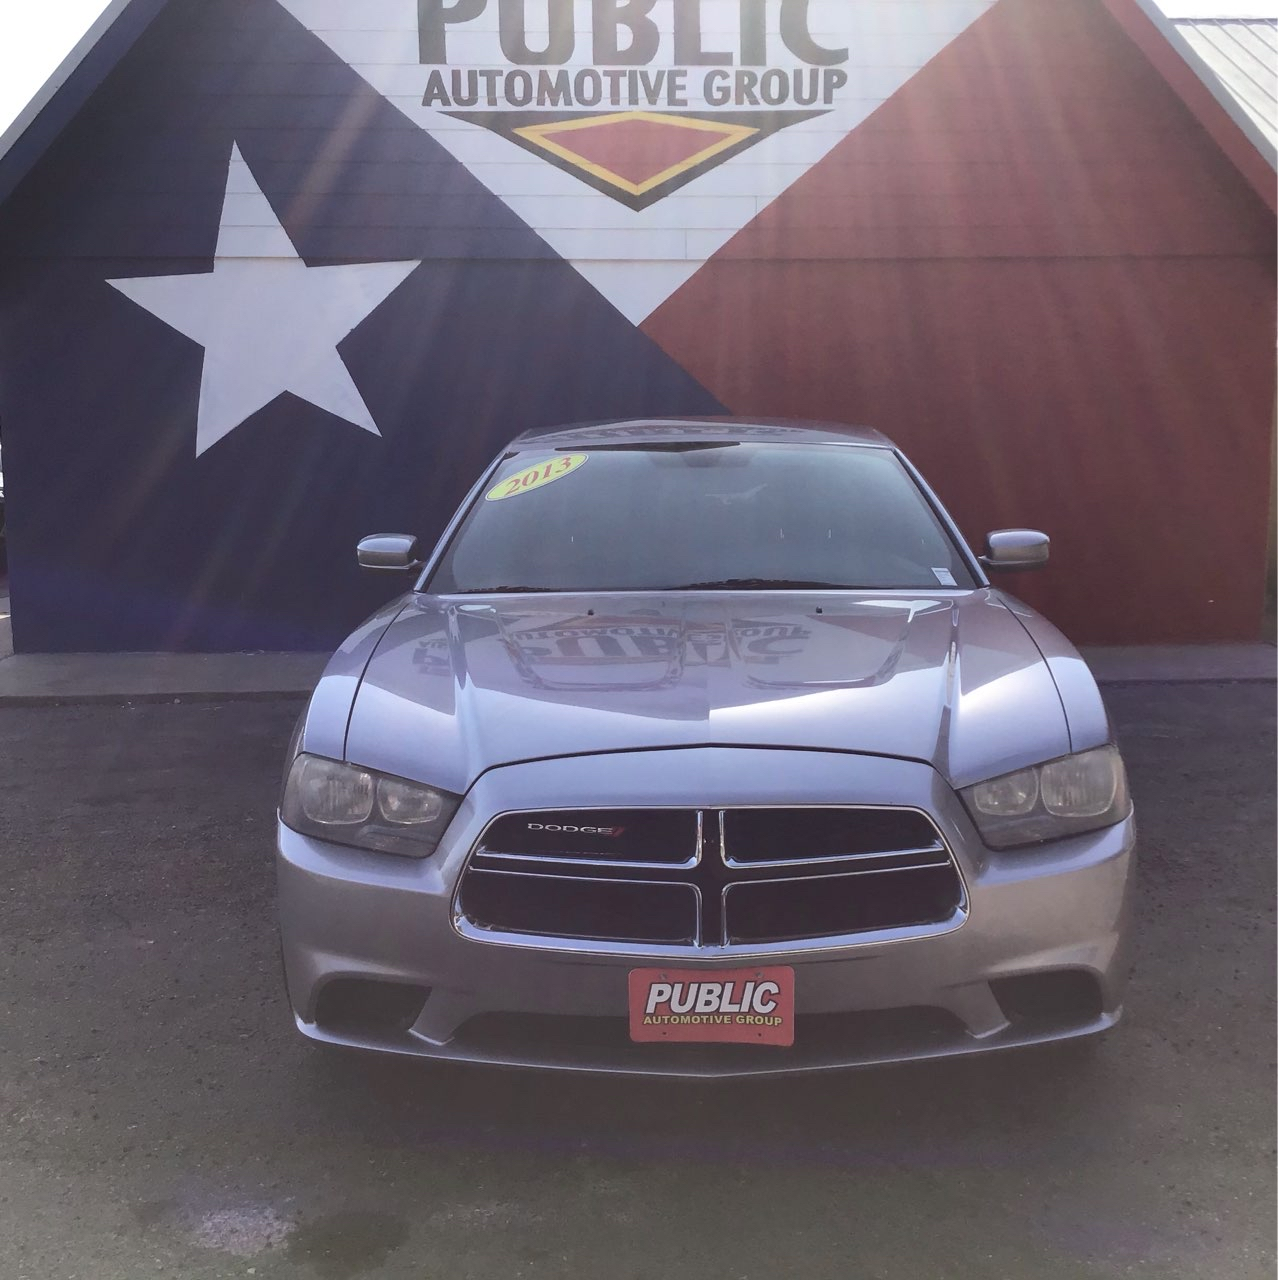 used vehicle - 4 DOOR SEDAN DODGE CHARGER 2013